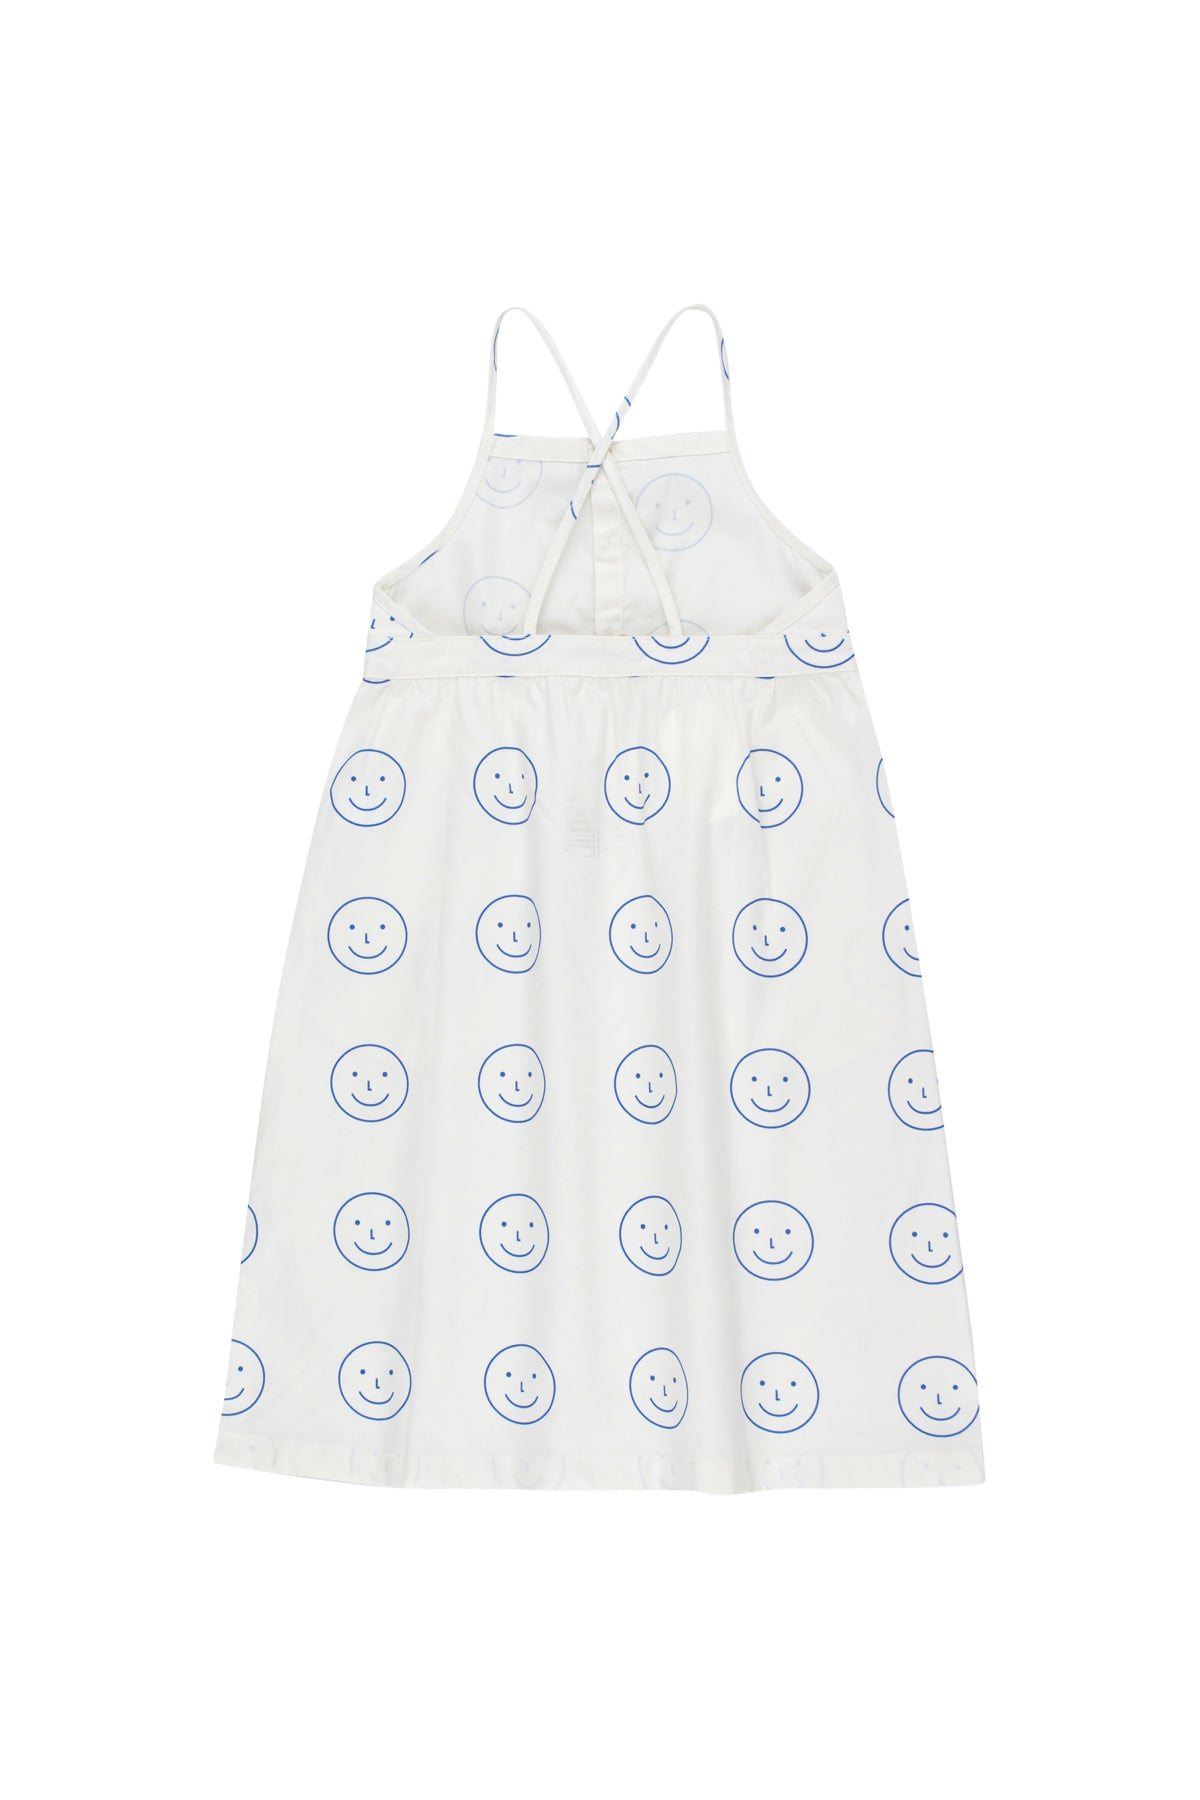 Tiny Cottons Happy Face Cross Back Dress